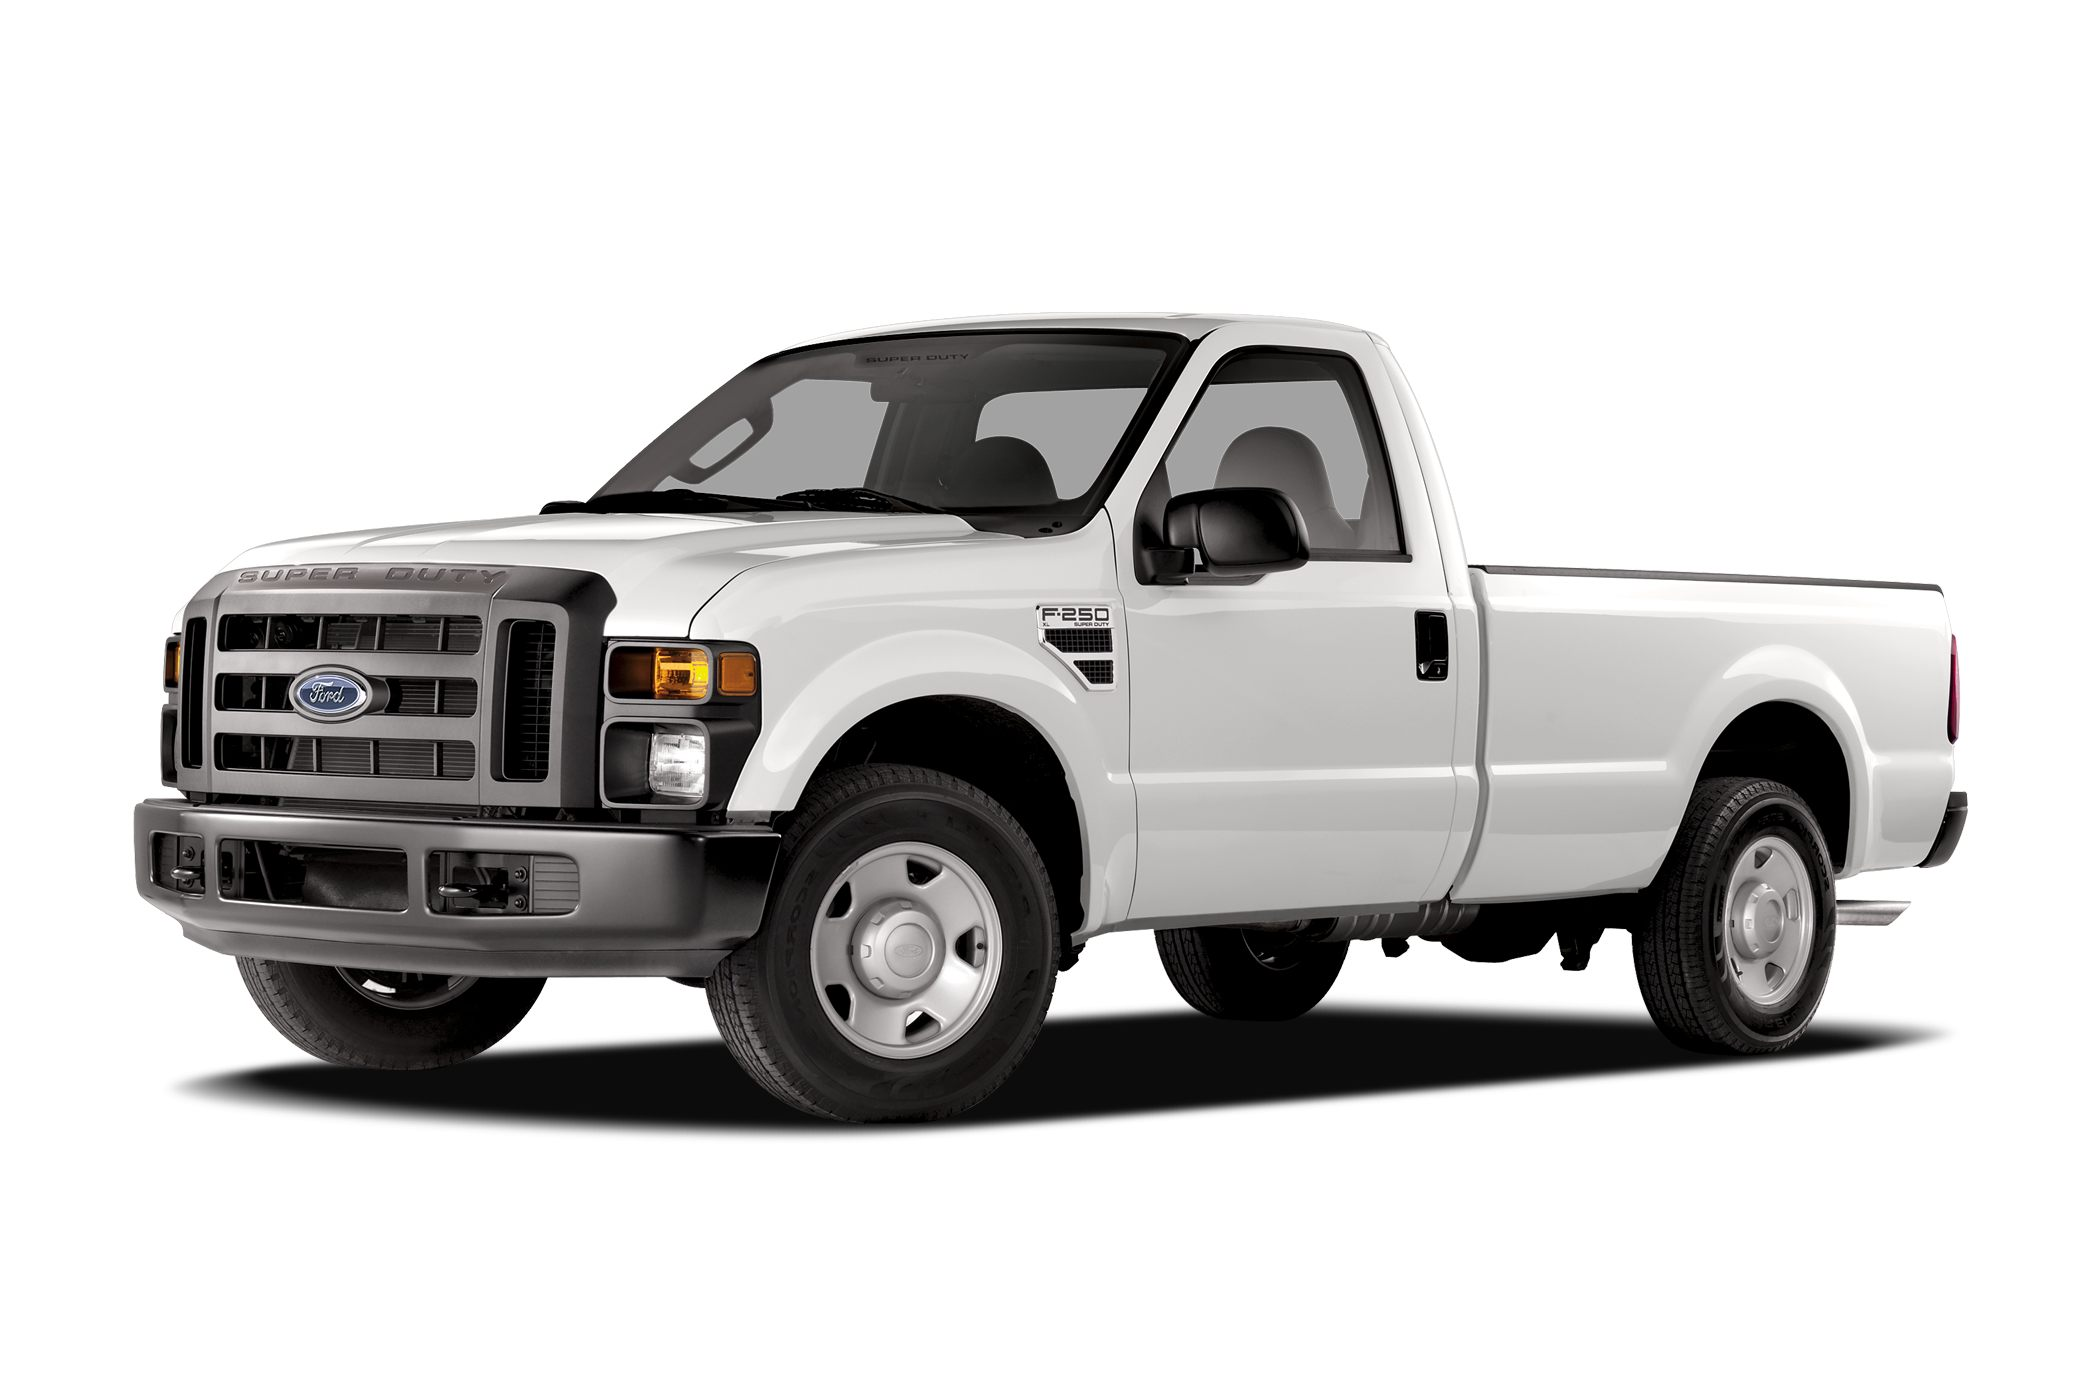 2008 Ford F250 XL Super Duty Extended Cab Pickup for sale in Akron for $17,995 with 60,288 miles